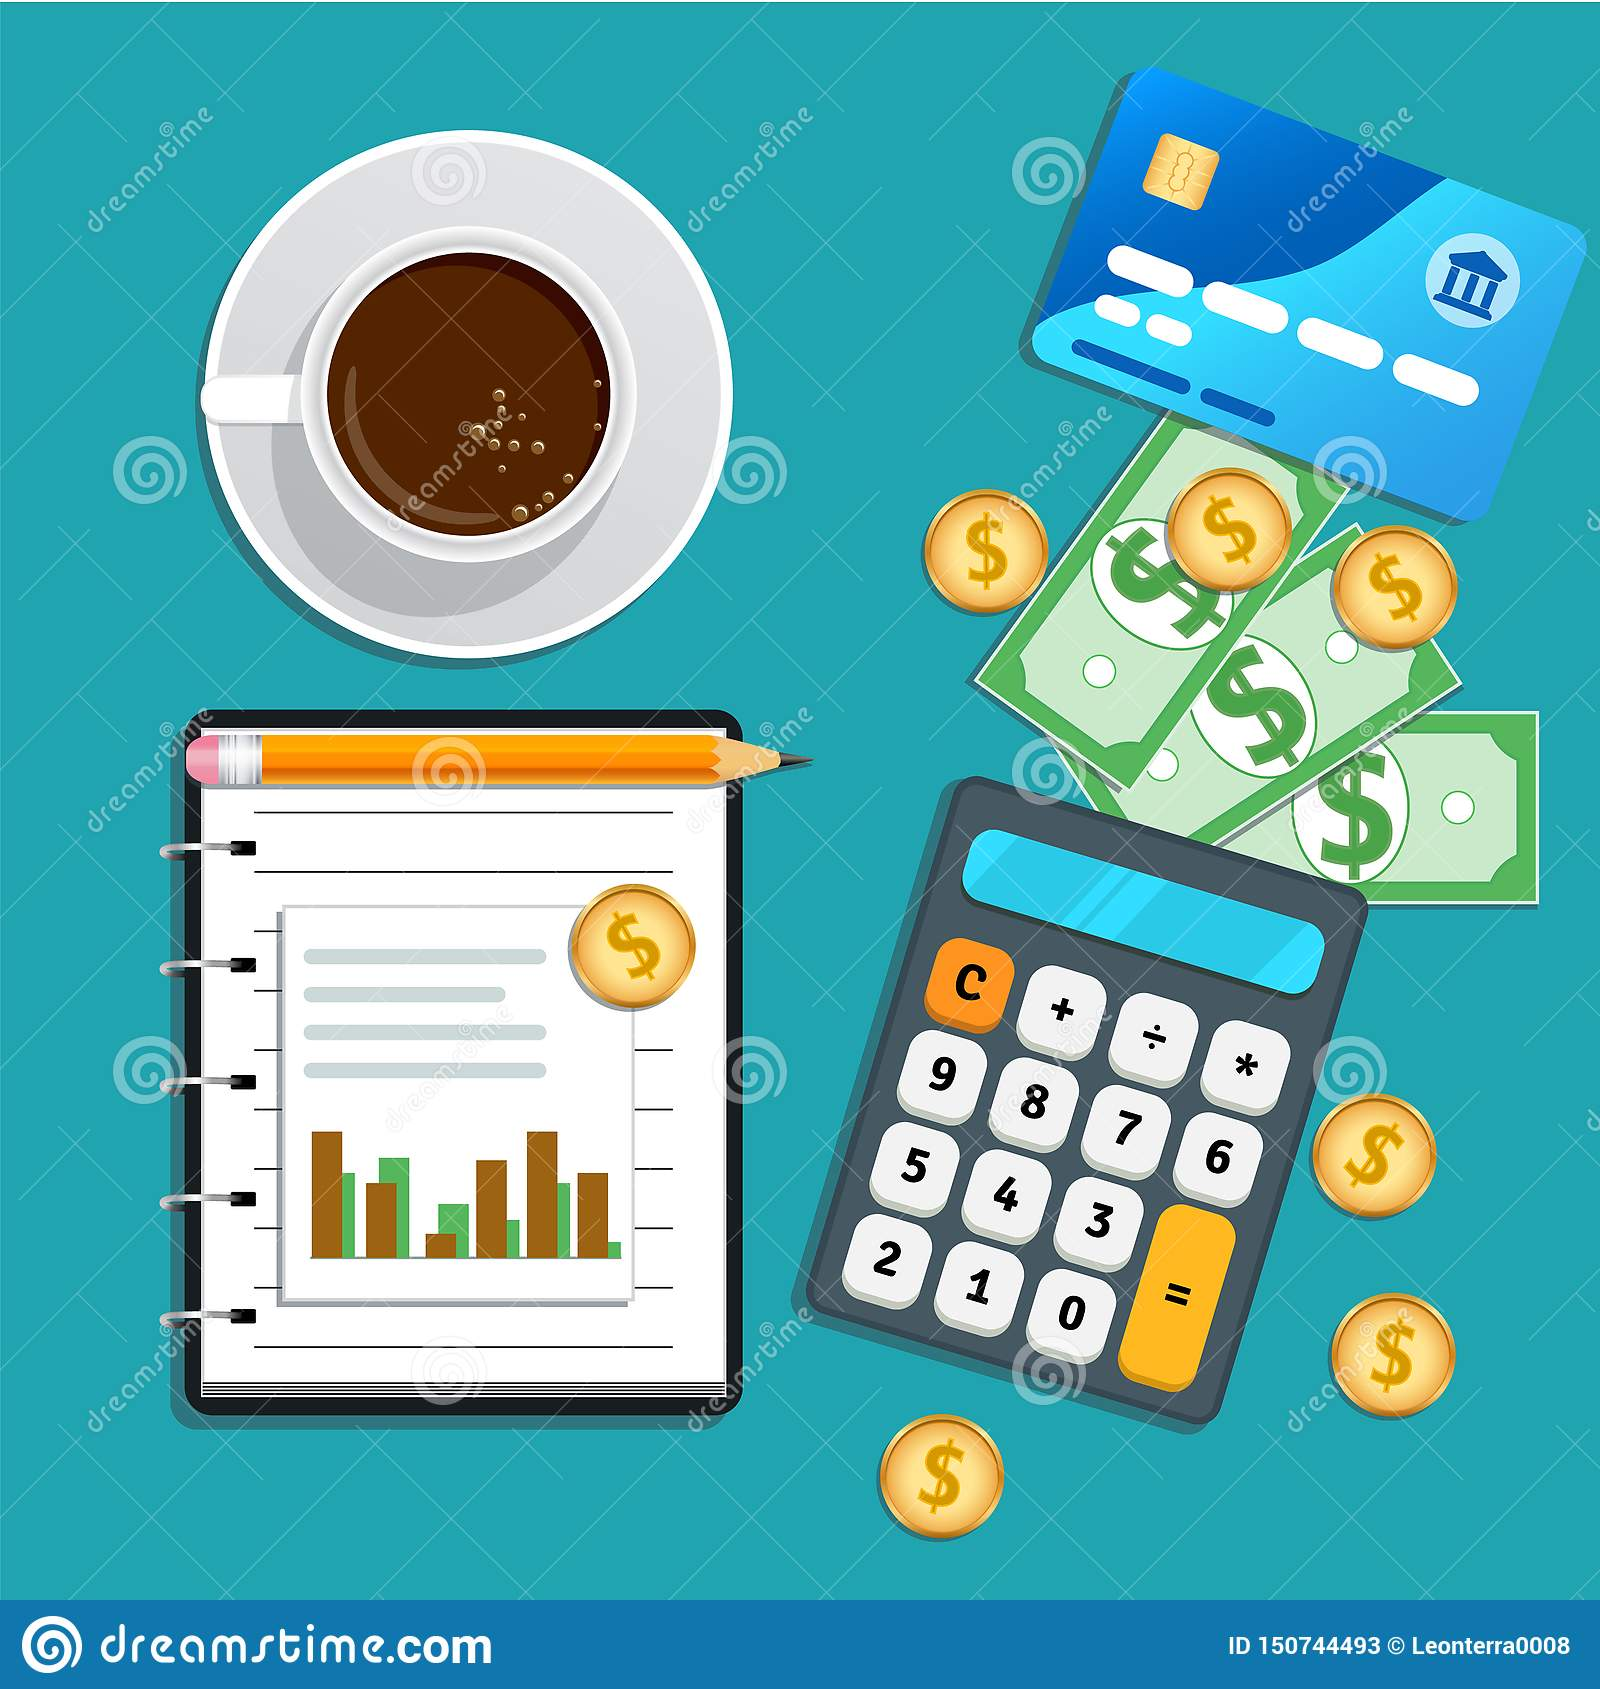 Accounting, Bookkeeping Concept. Financial Audit, Risk